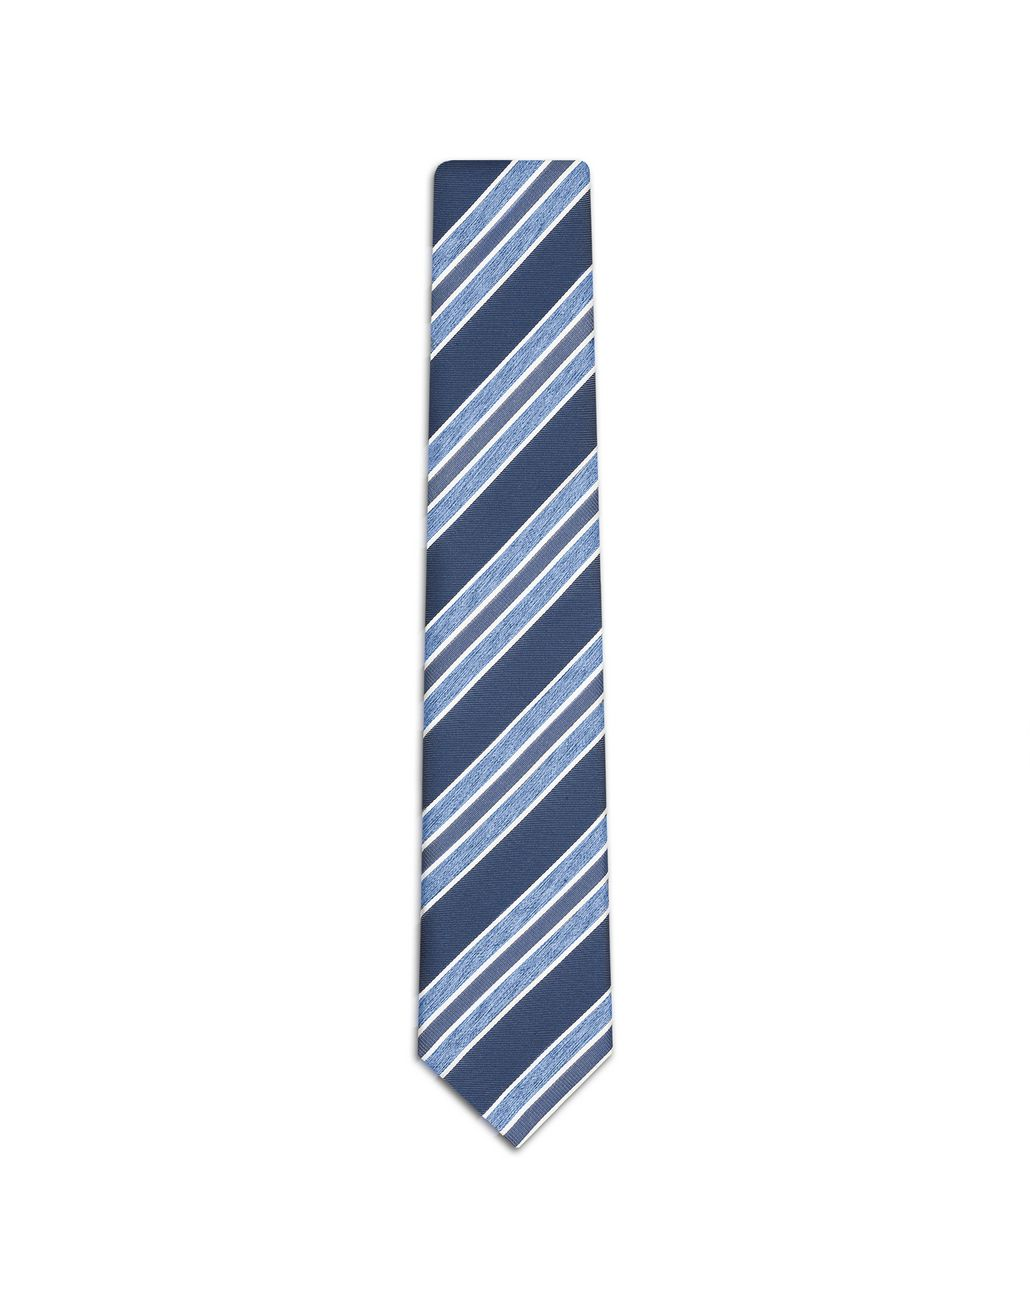 BRIONI Navy-Blue and Sky-Blue Regimental Tie Tie U f